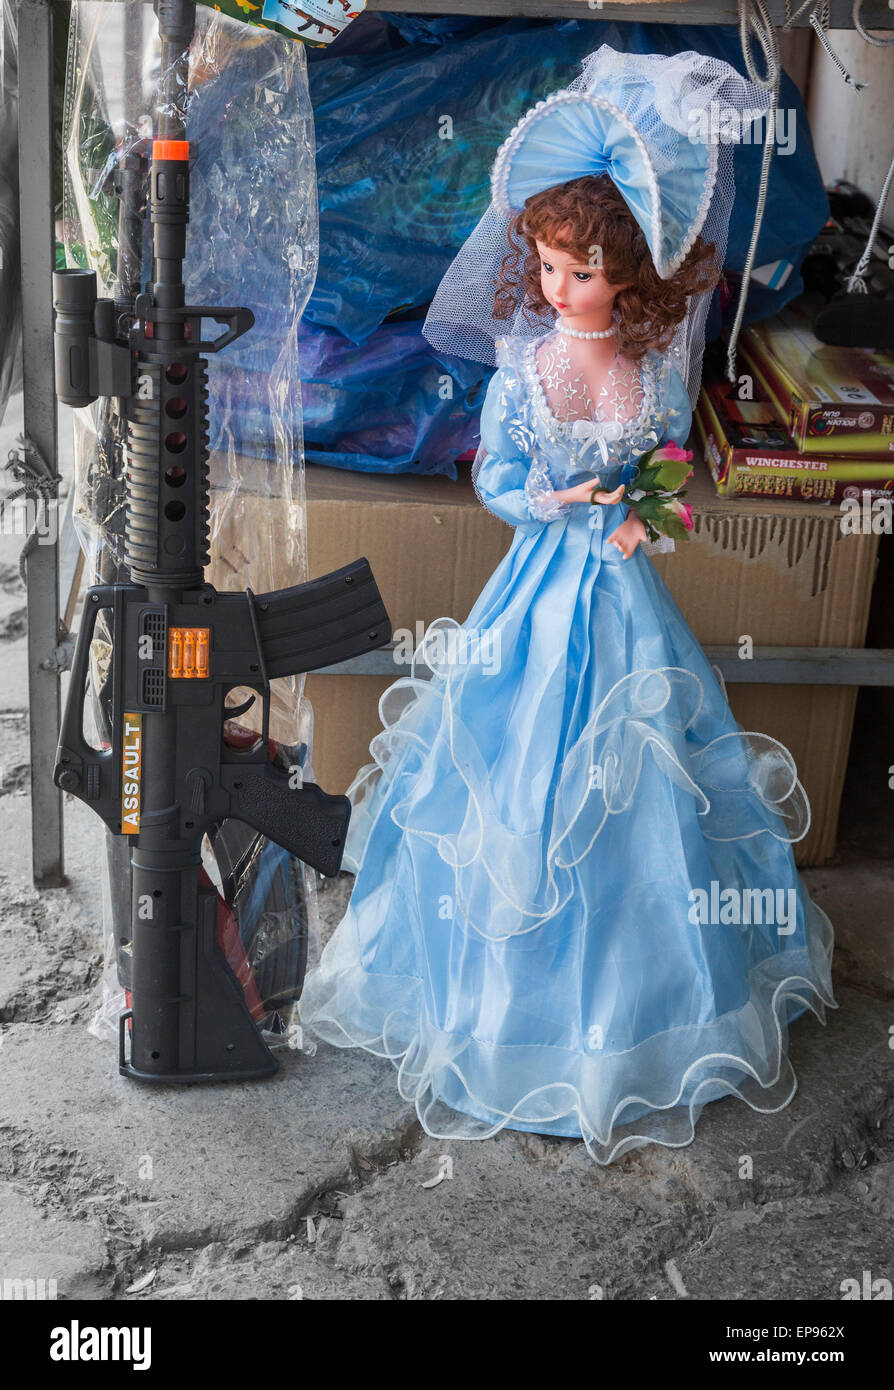 Princess bride doll and machine gun toys side by side, bazar, Zahedan, Iran - Stock Image